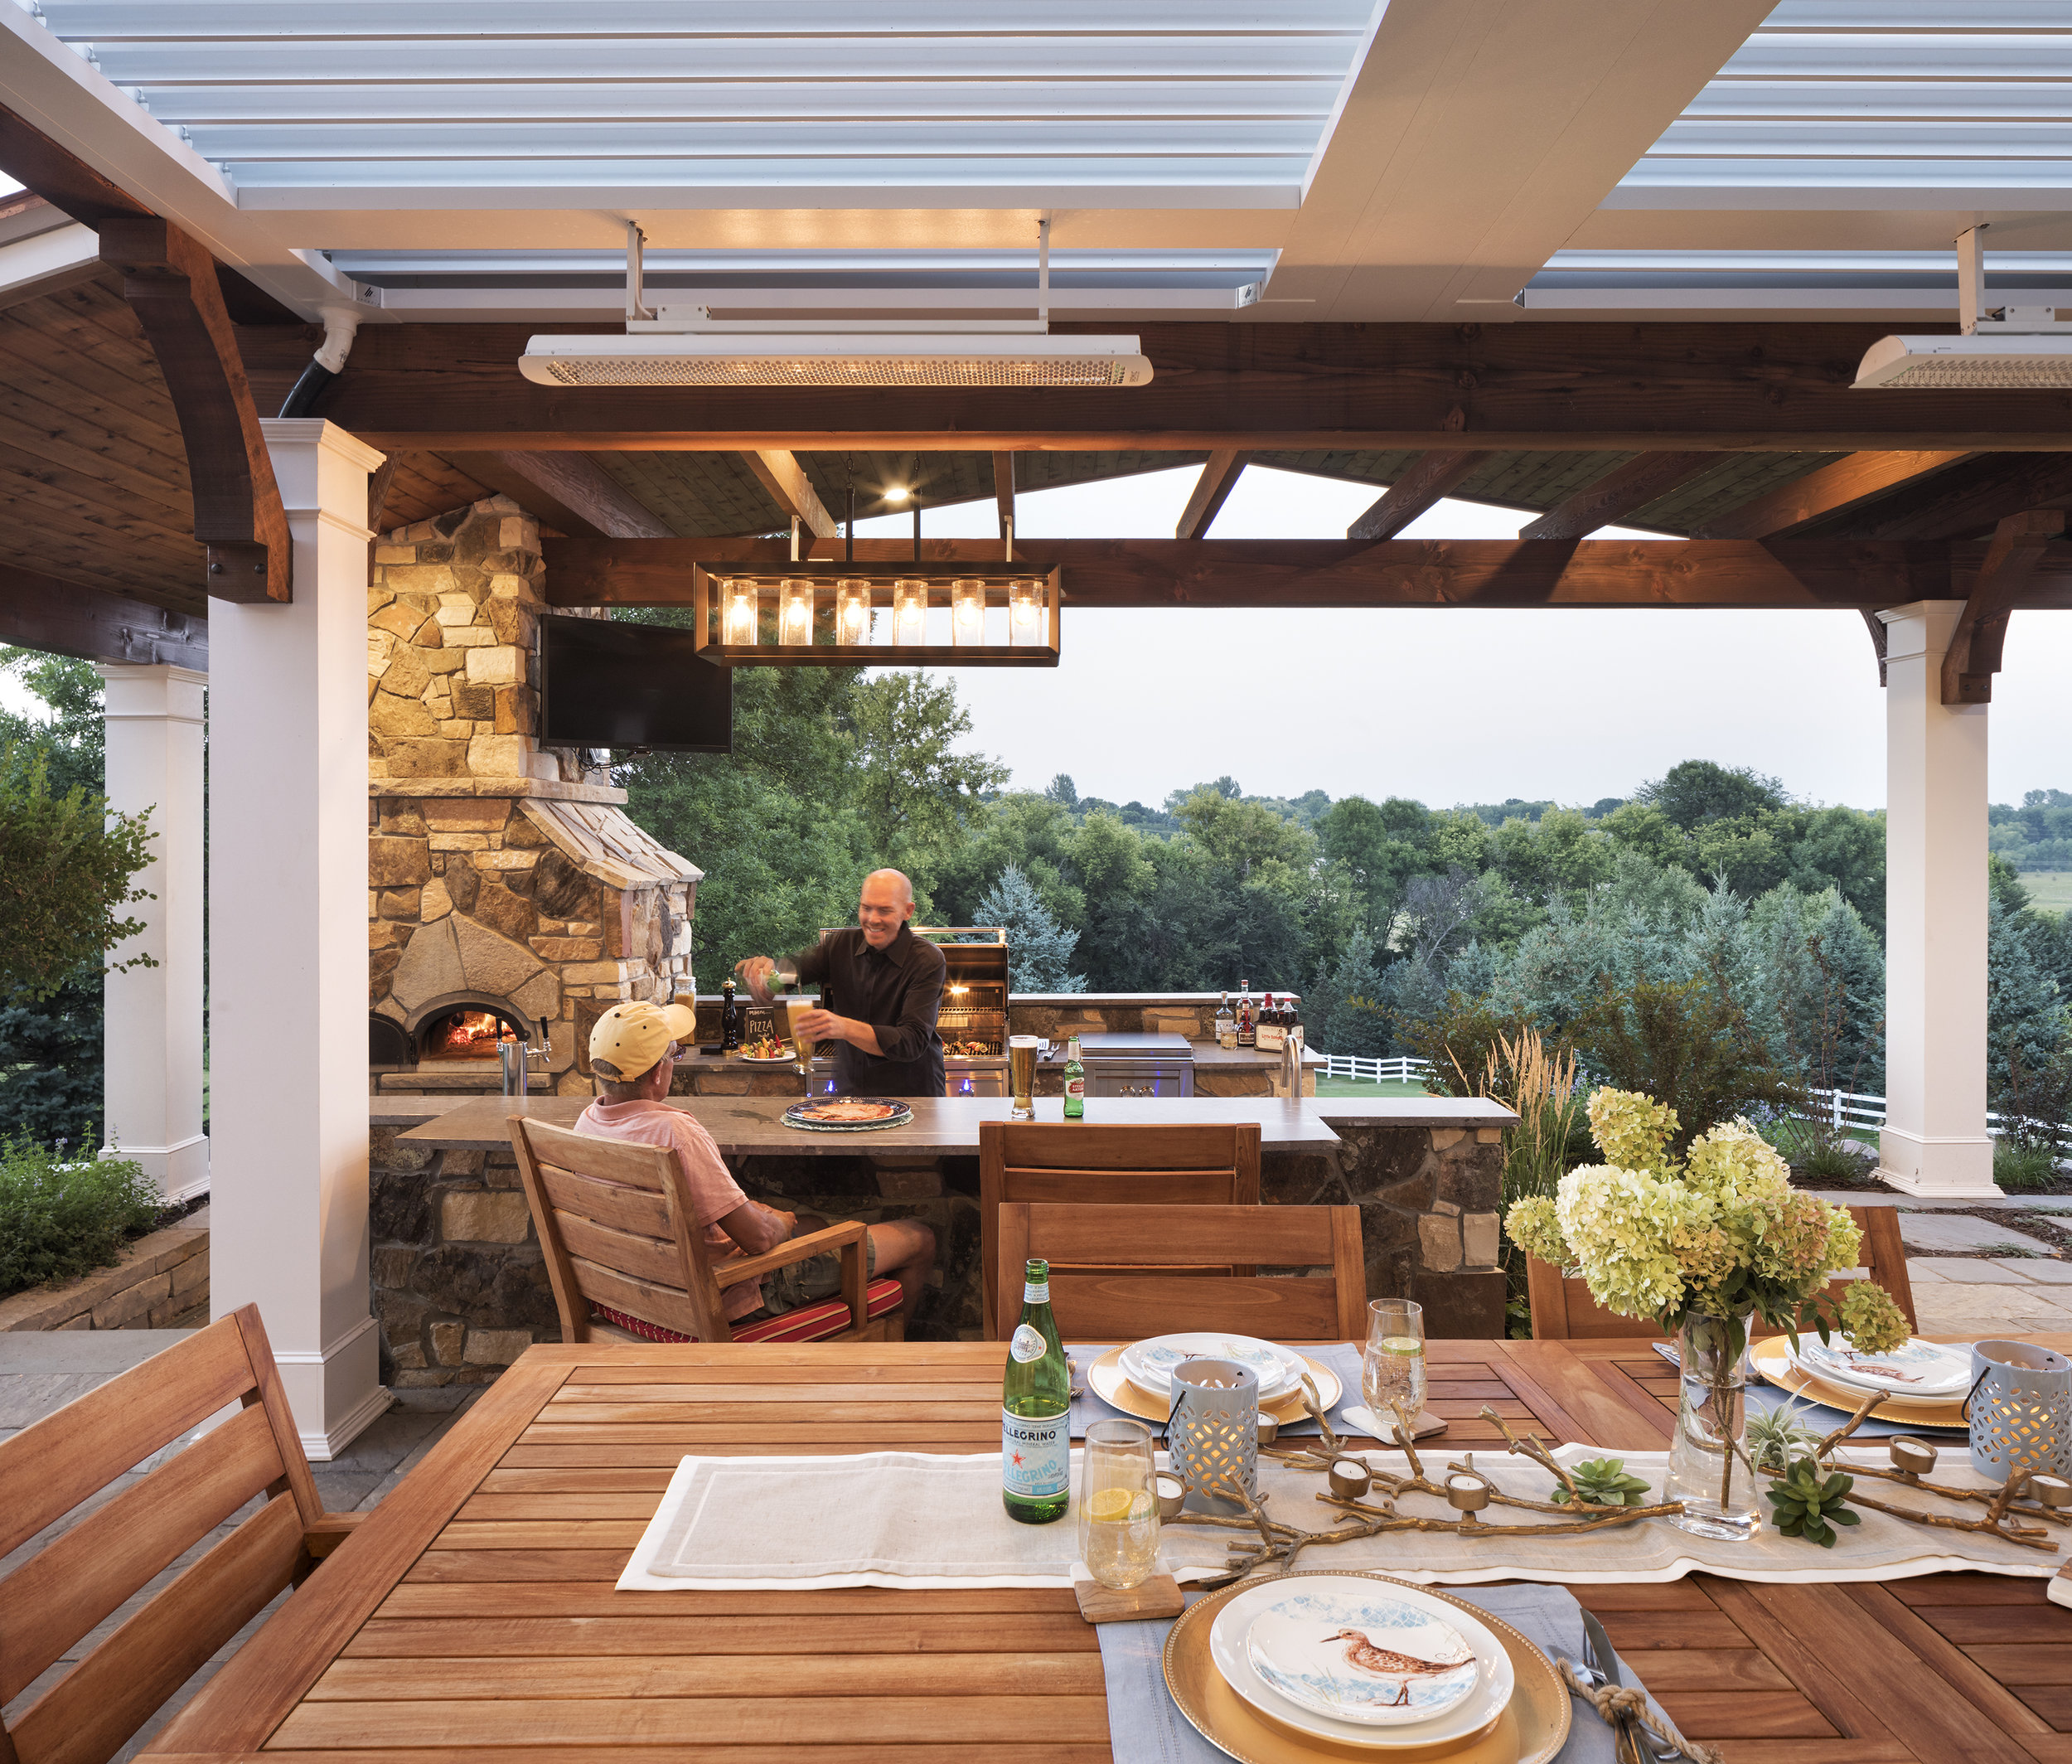 Mom's Design Build - Outdoor Kitchen Dining Table